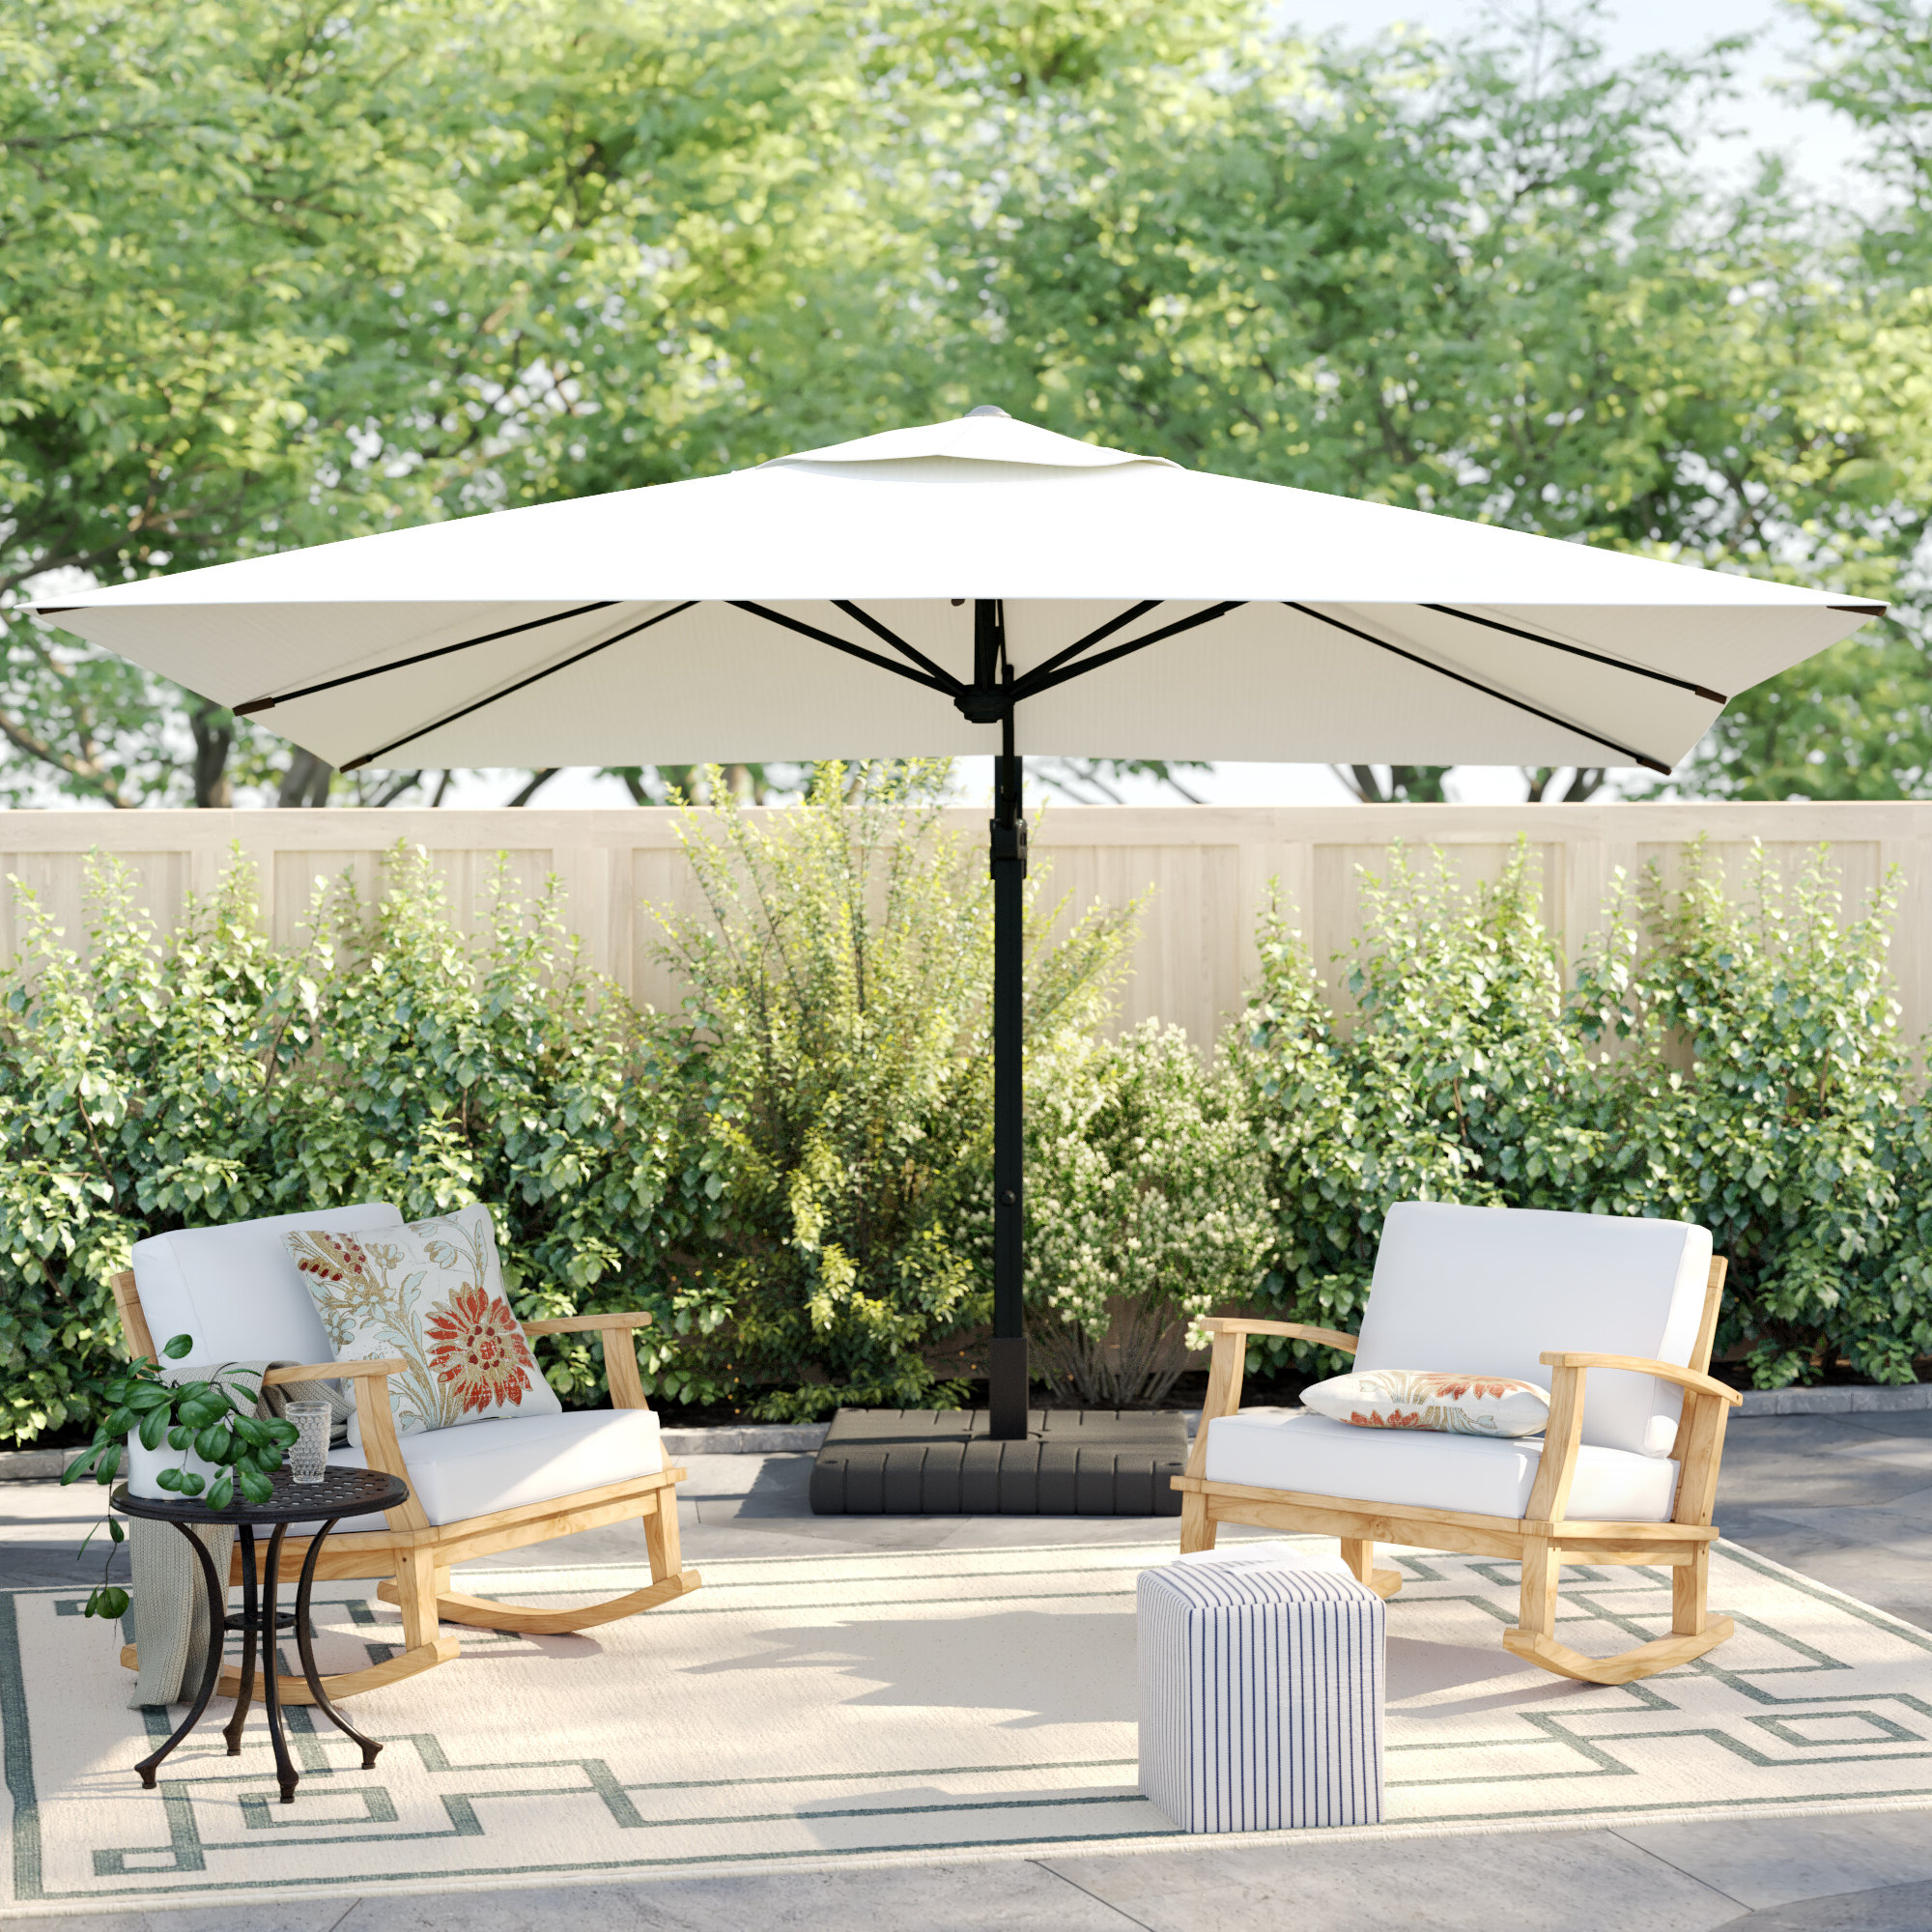 Carlisle 10' Square Cantilever Sunbrella Umbrella Throughout Widely Used Spitler Square Cantilever Umbrellas (View 4 of 20)